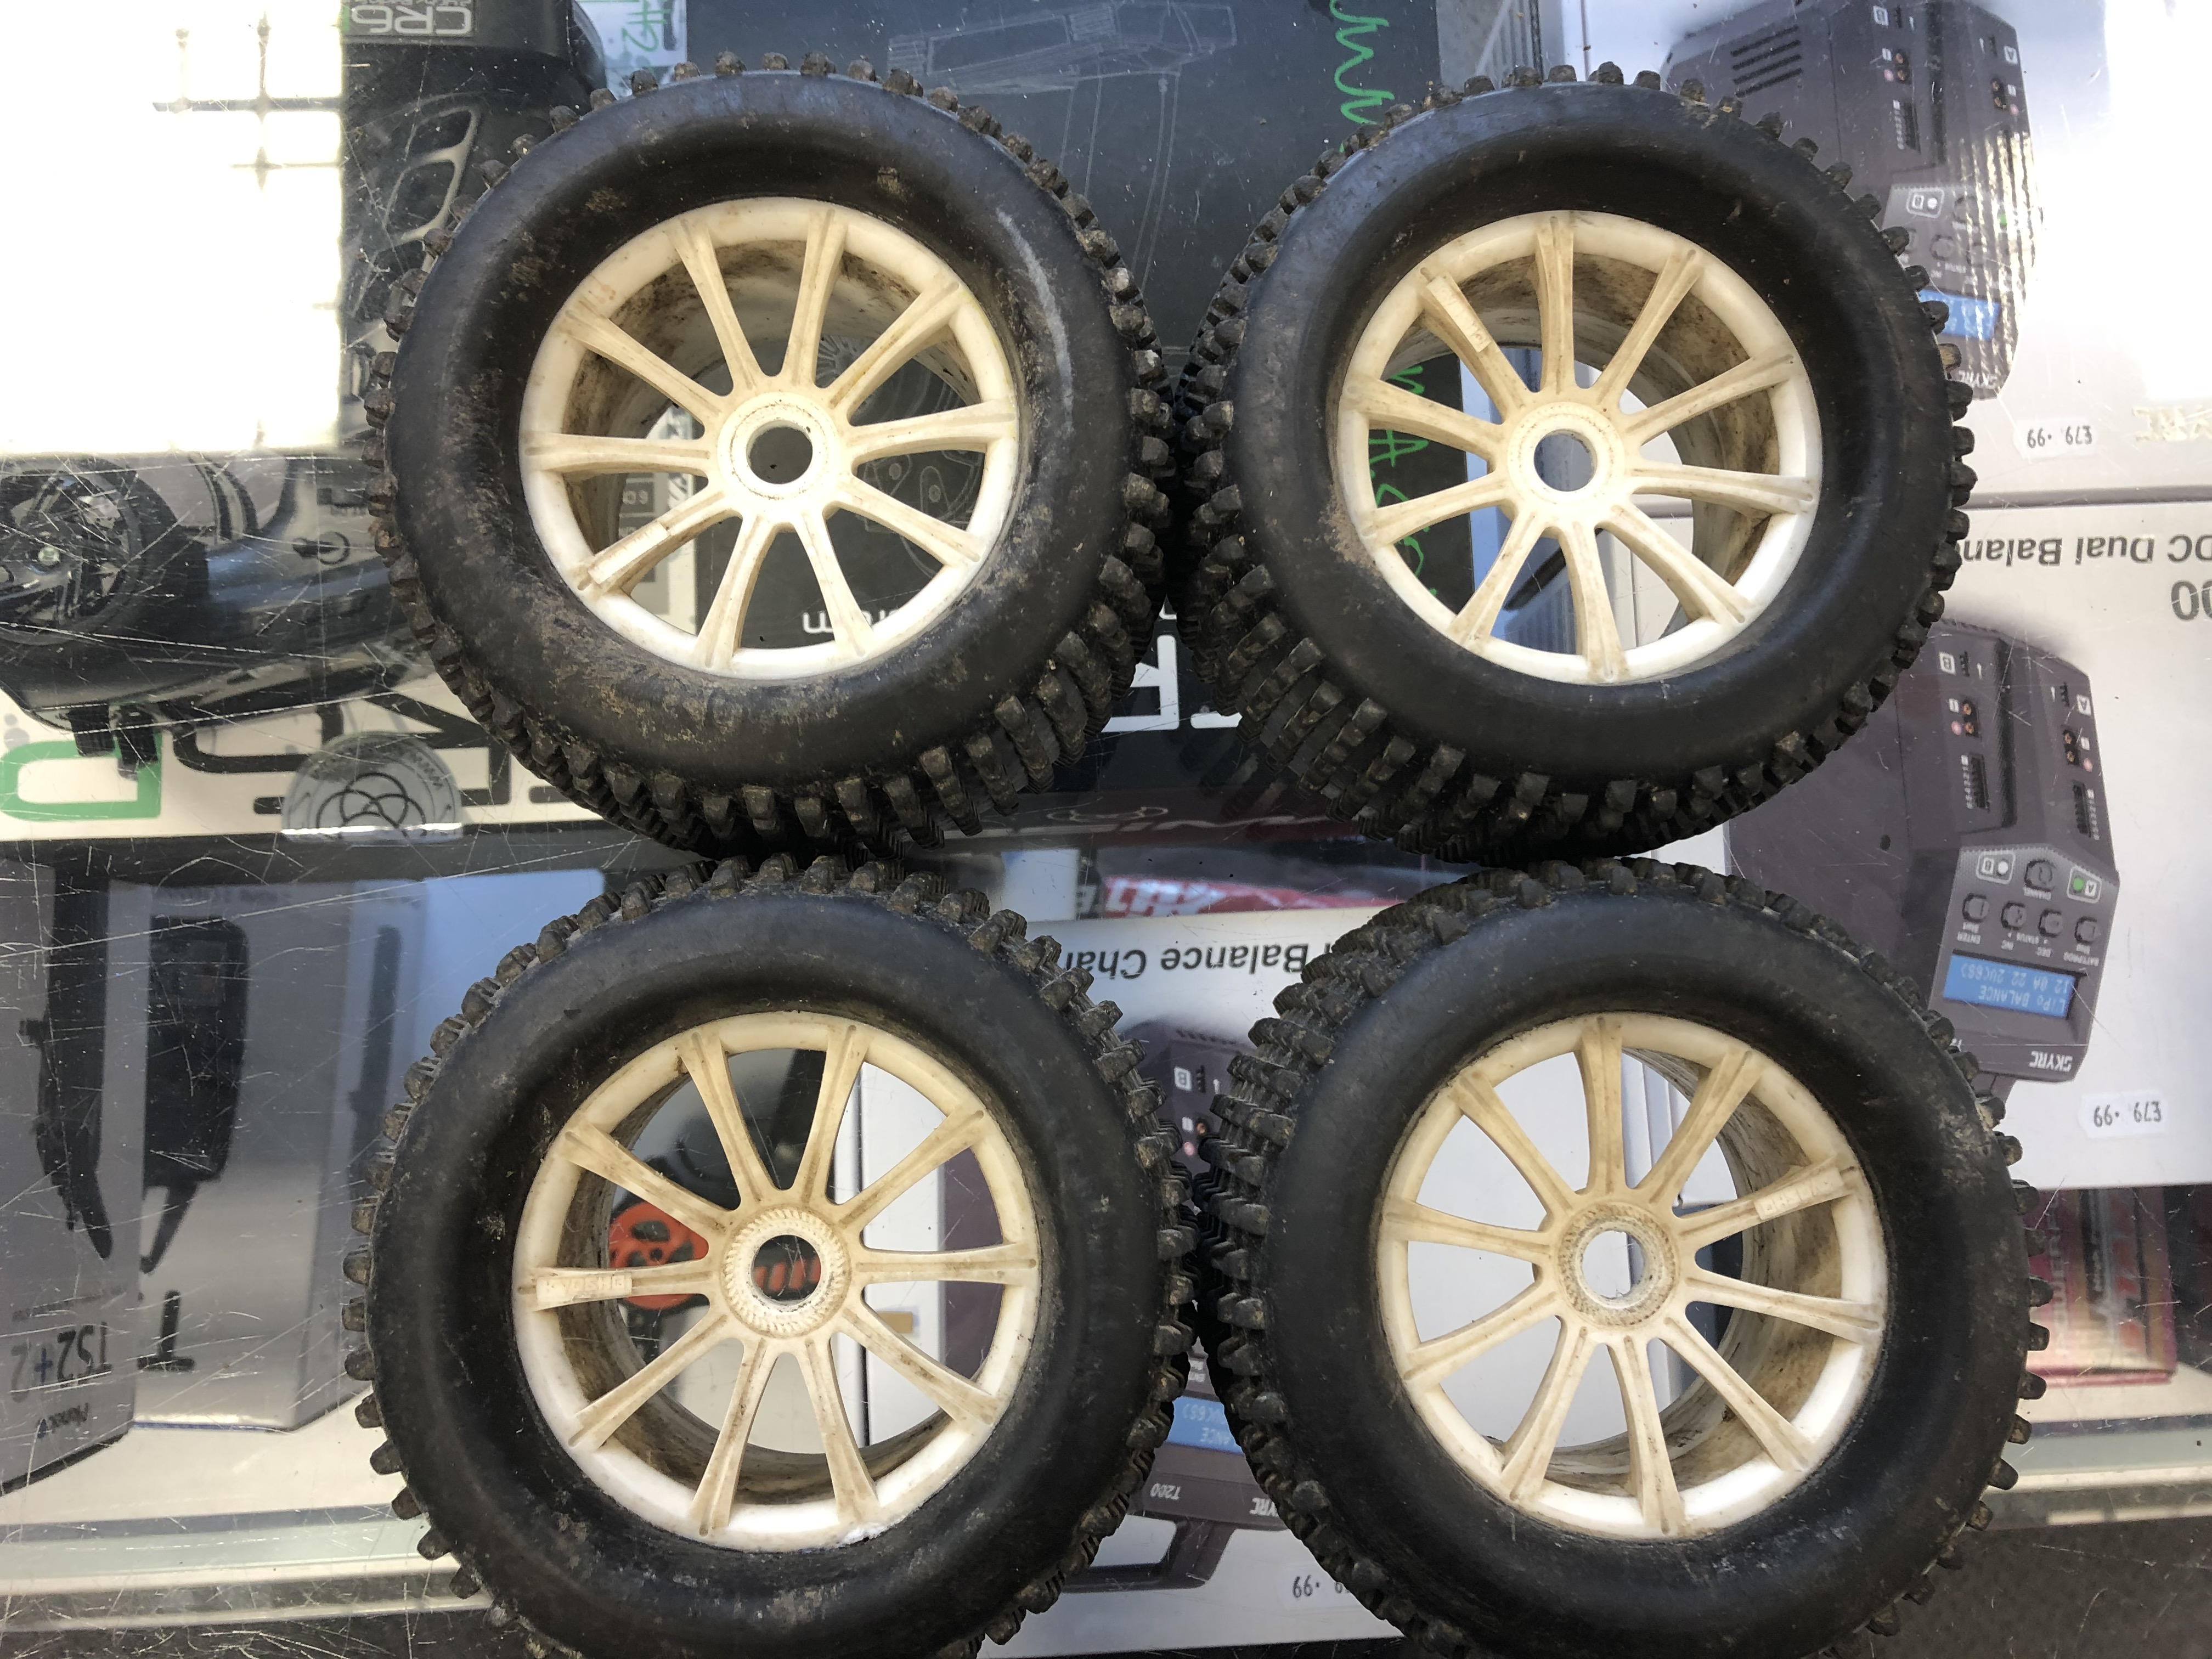 1/8 scale Truggy/buggy wheels & tires